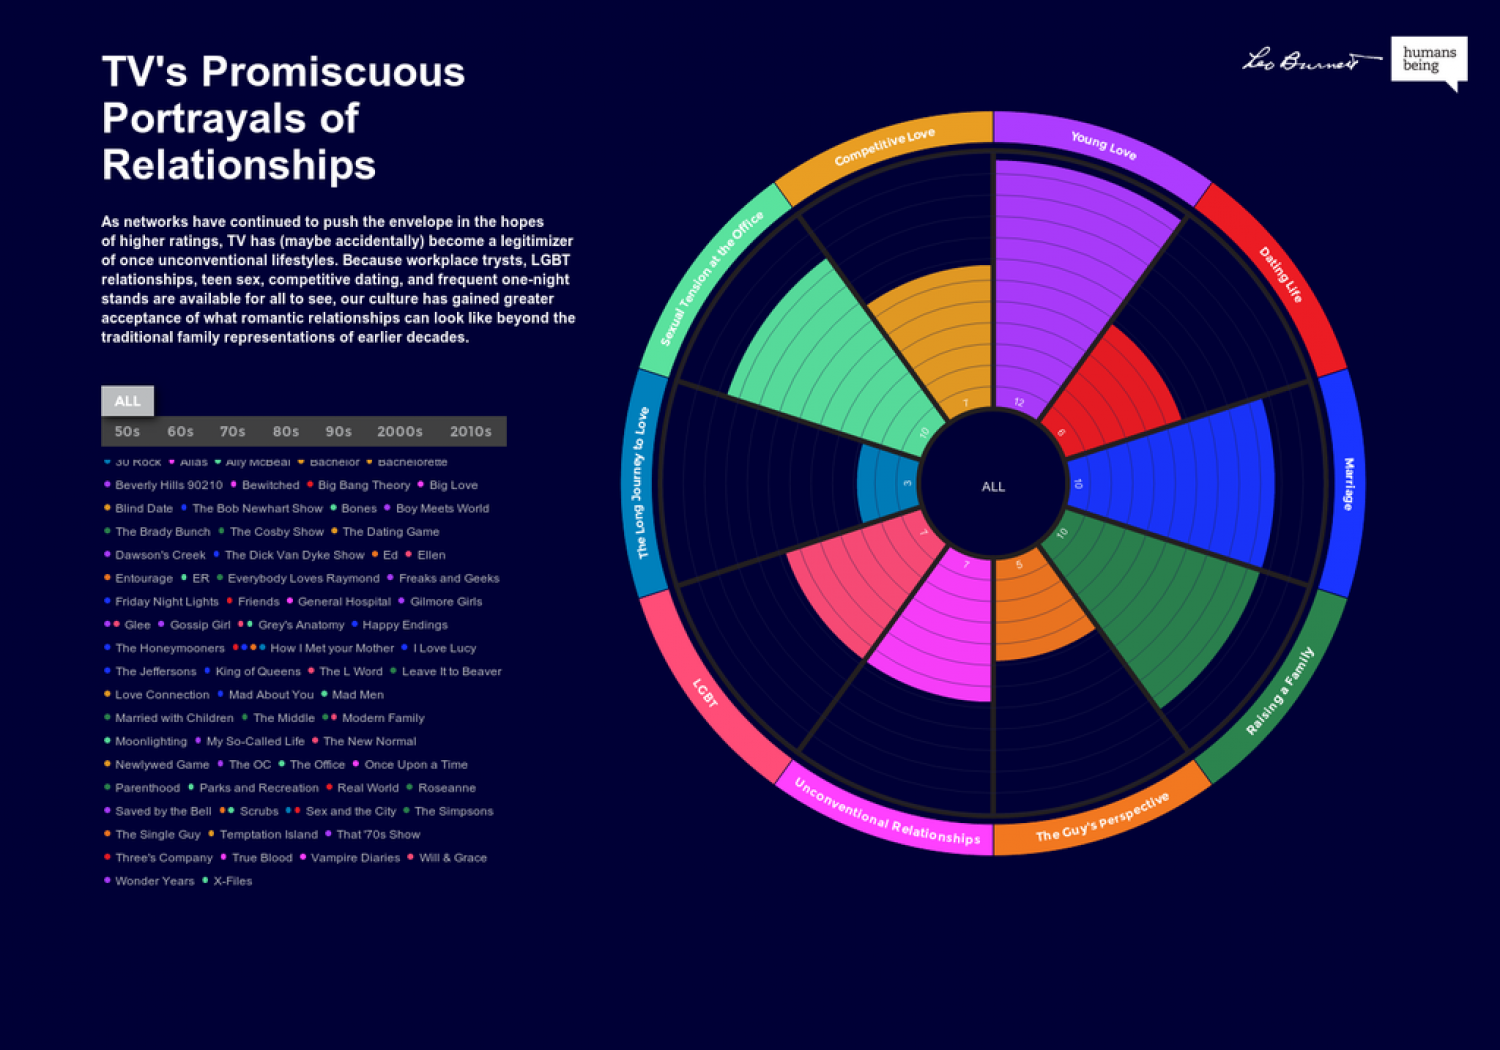 TV's Promiscuous Portrayals of Relationships Infographic